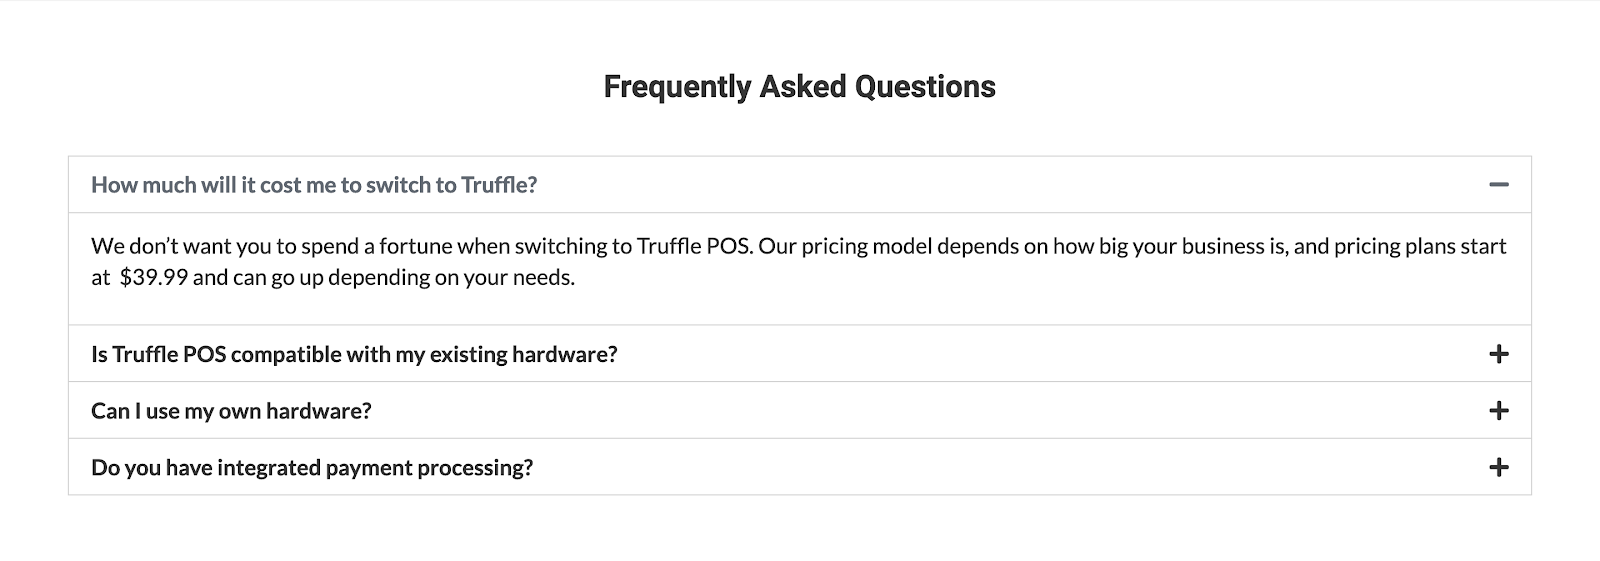 FAQ's about Truffle POS